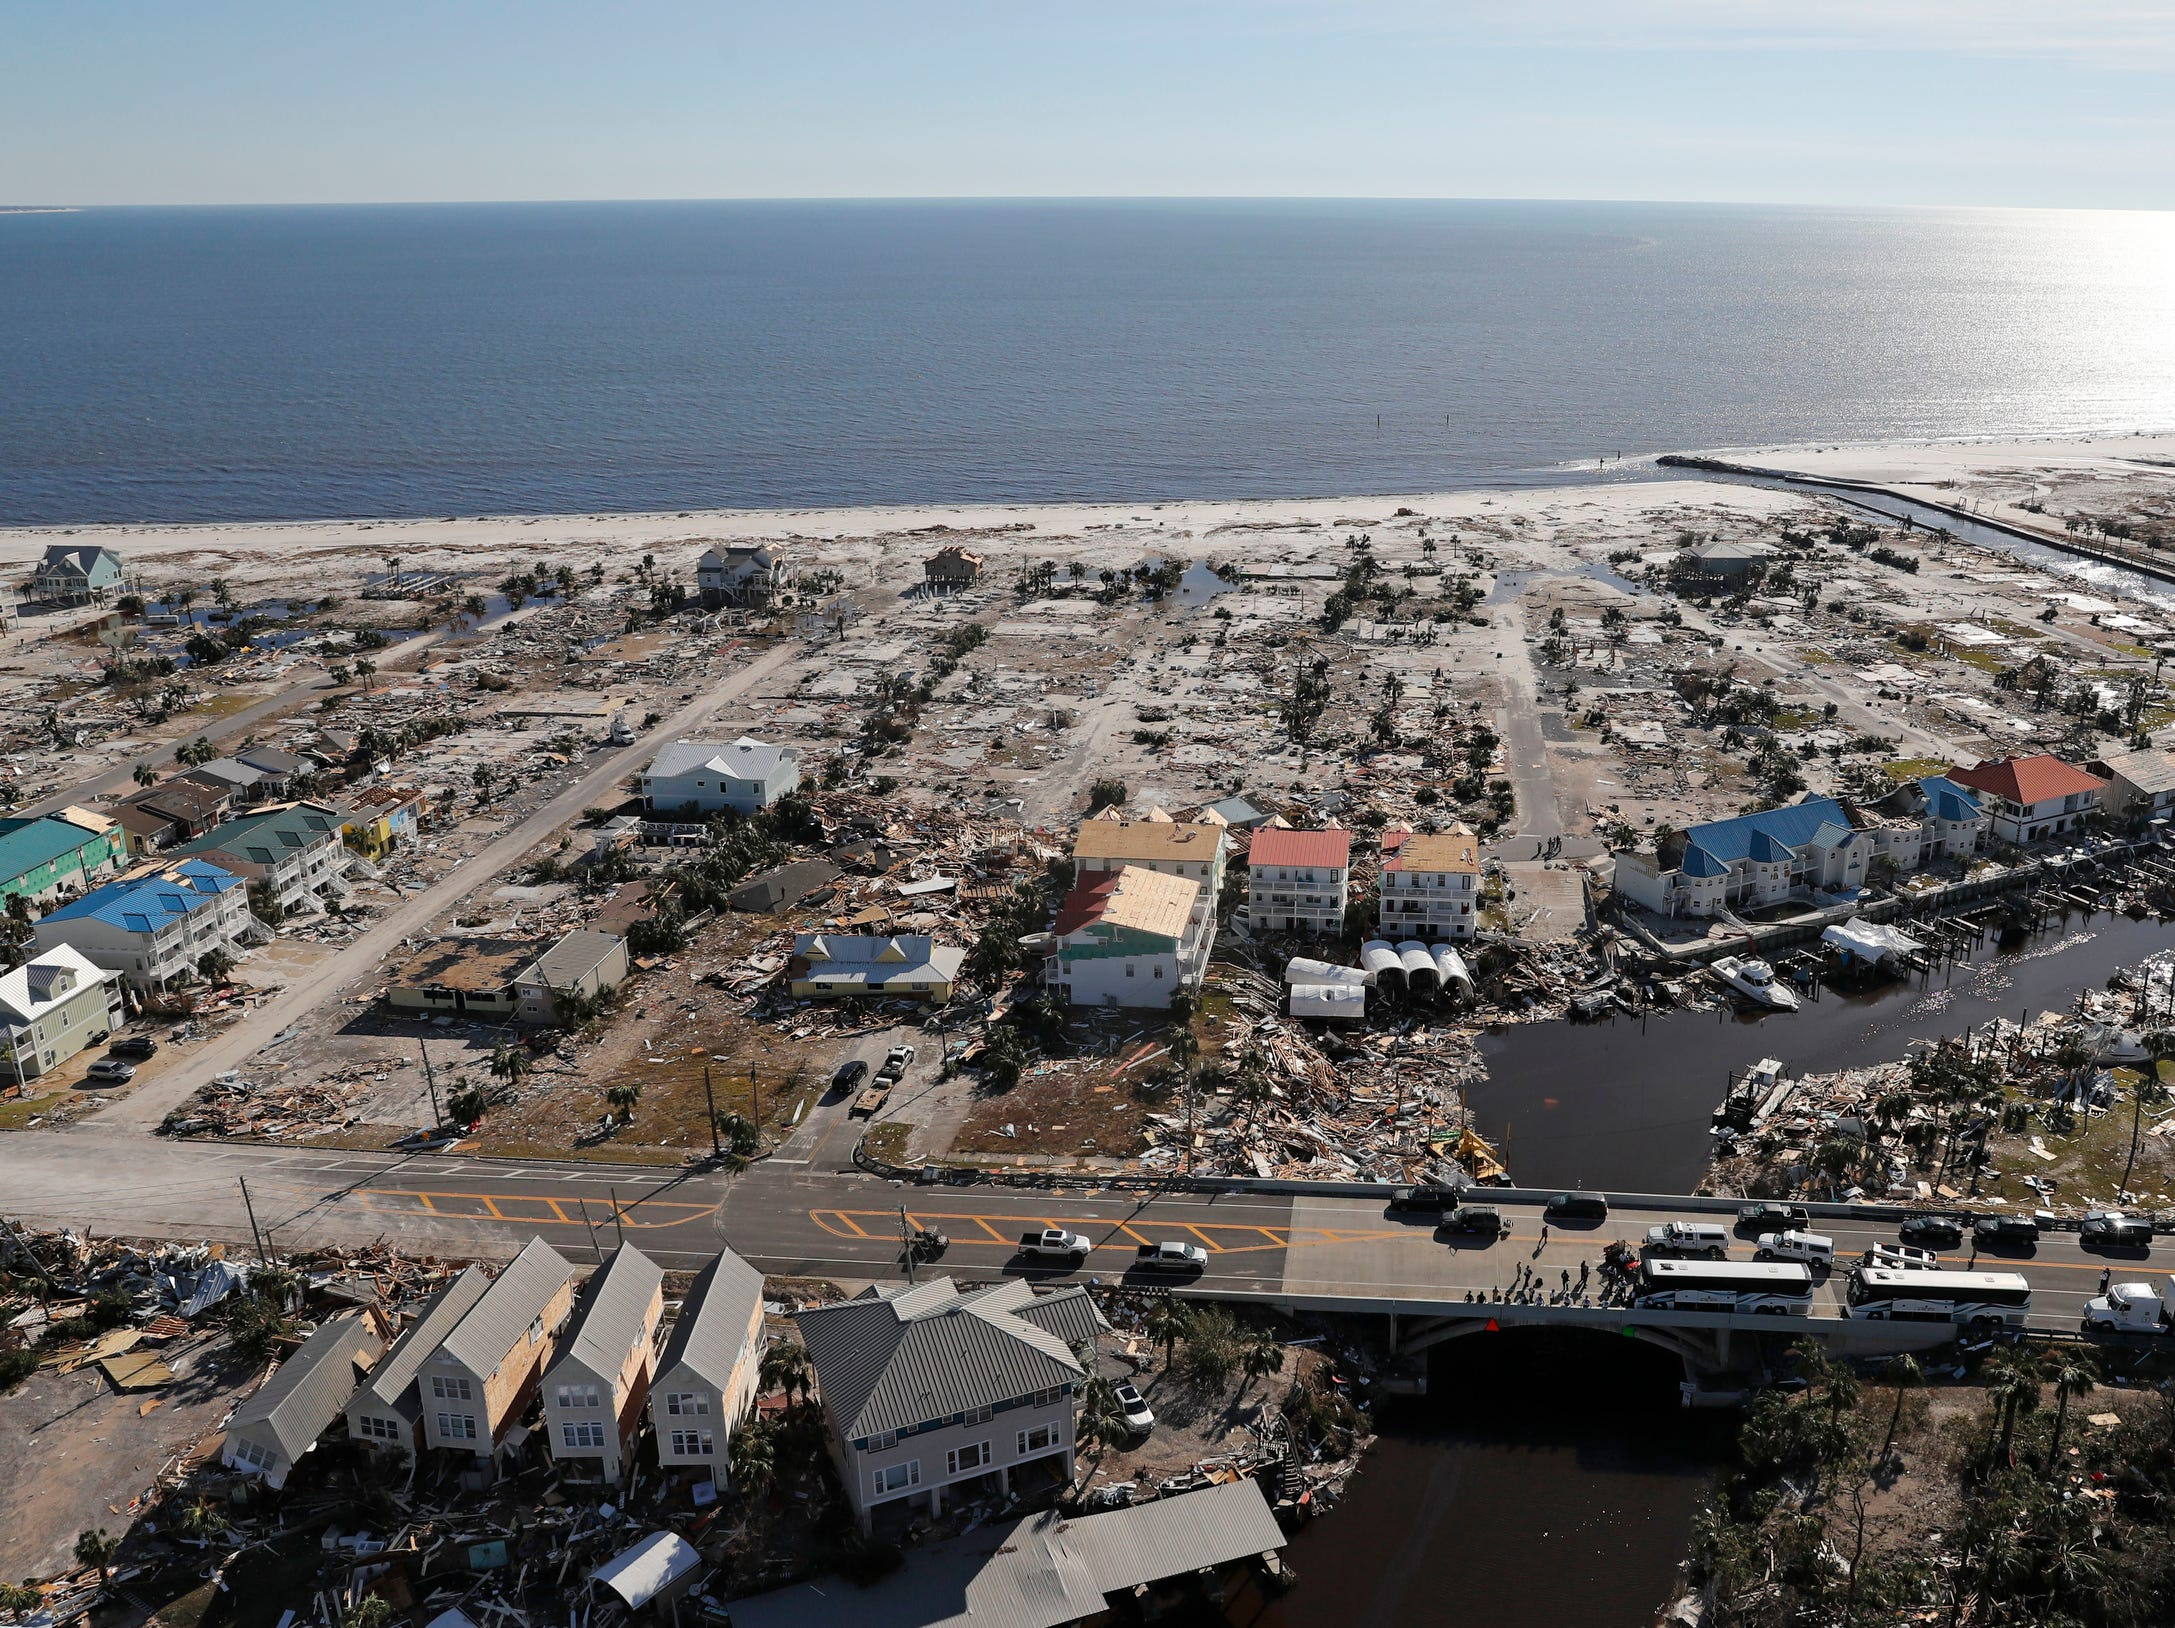 Devastation from Hurricane Michael is seen in this areal photo over Mexico Beach, Fla., on Friday, Oct. 12, 2018.